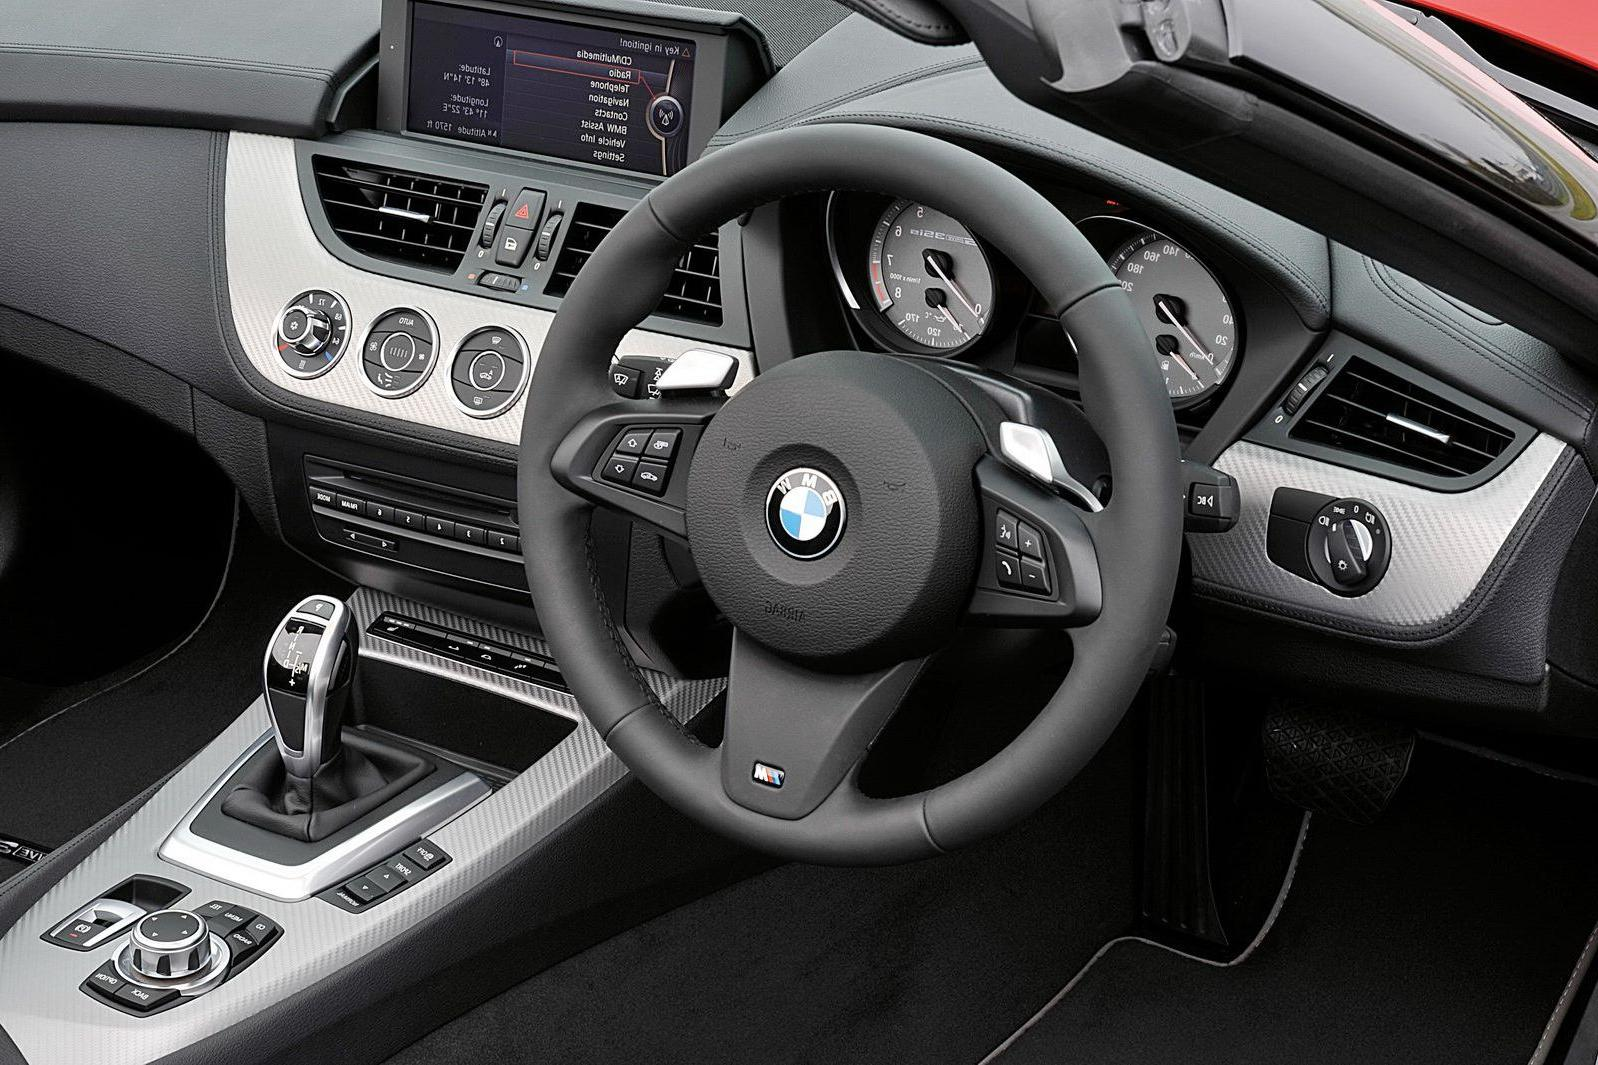 The New BMW 2011 High Performance Z4  10 . The New BMW 2011 High Performance